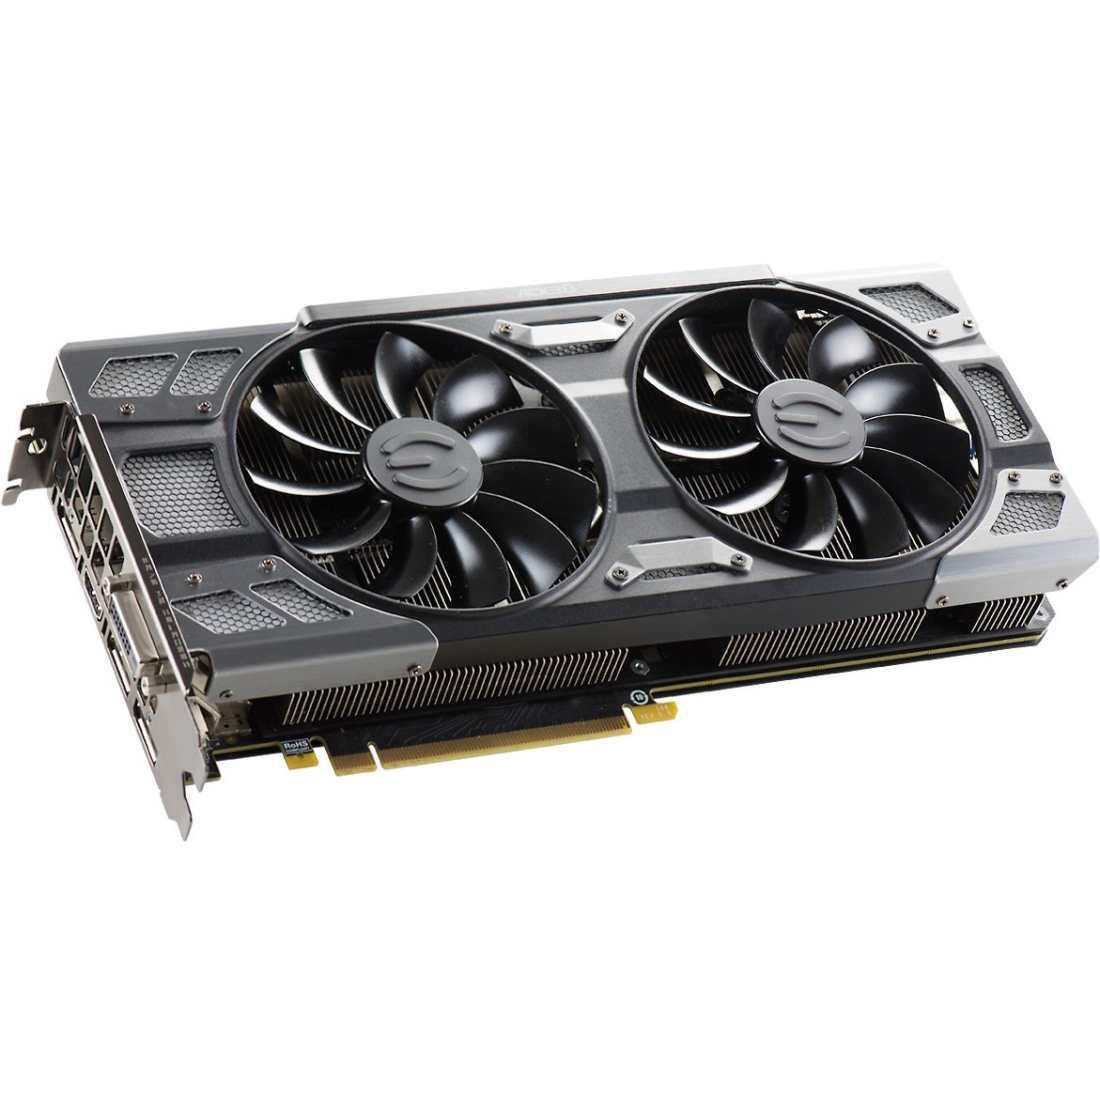 EVGA NVIDIA GeForce GTX 1080 FTW 8GB PCI Express 3.0 Graphics Card by EVGA